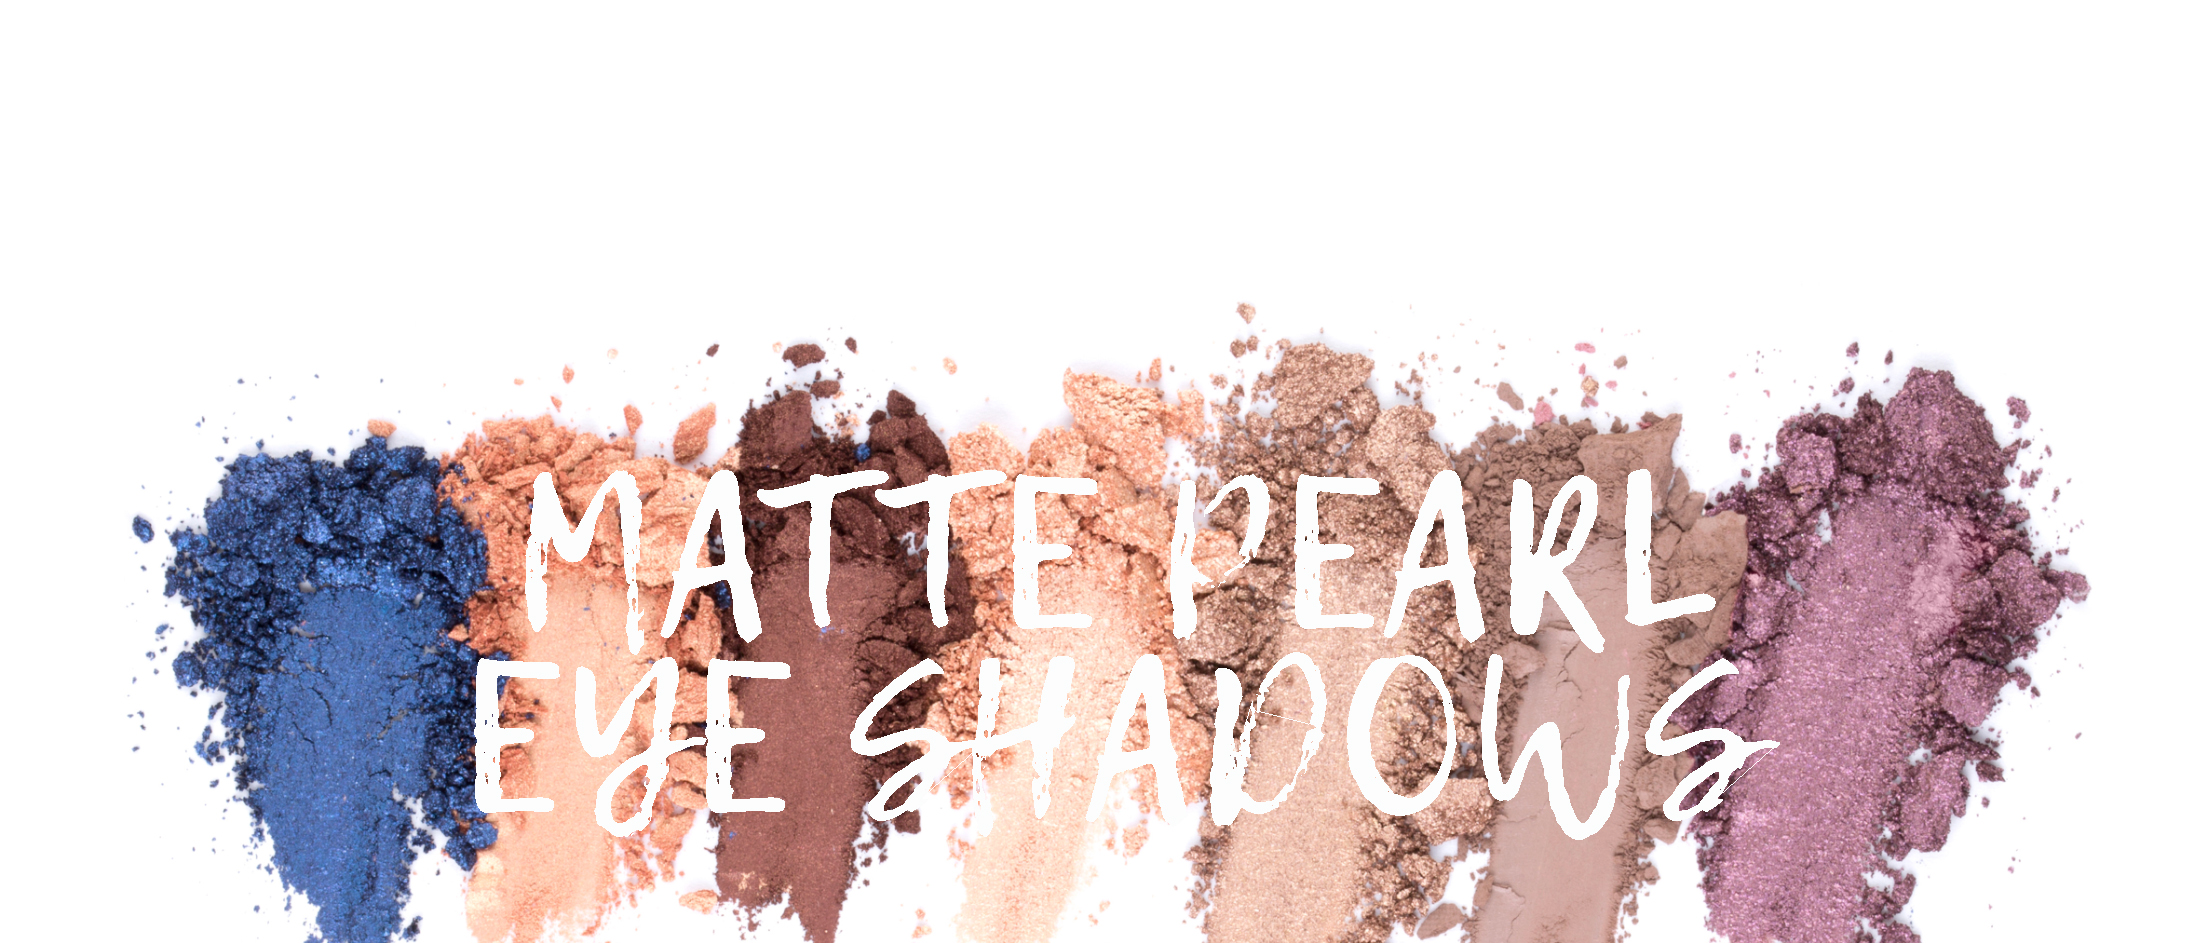 MATTEPEARLSHADOWS.jpg